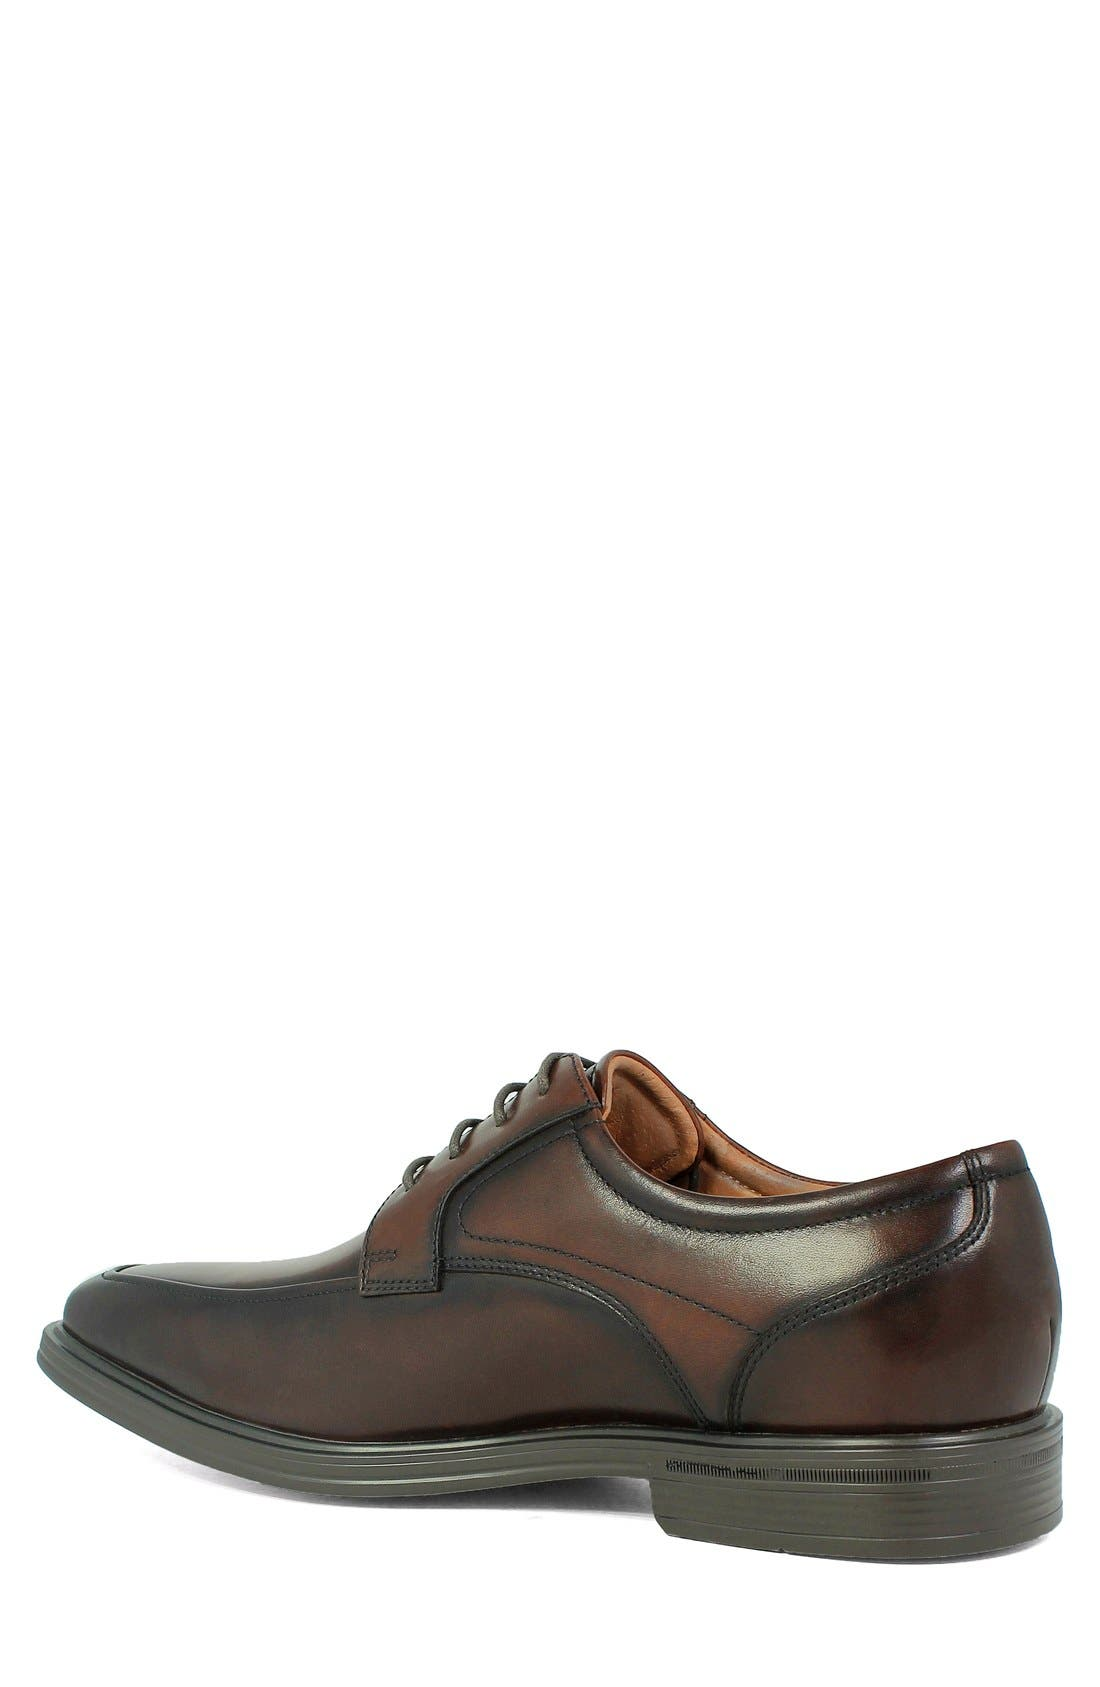 'Heights' Apron Toe Derby,                             Alternate thumbnail 2, color,                             BROWN LEATHER